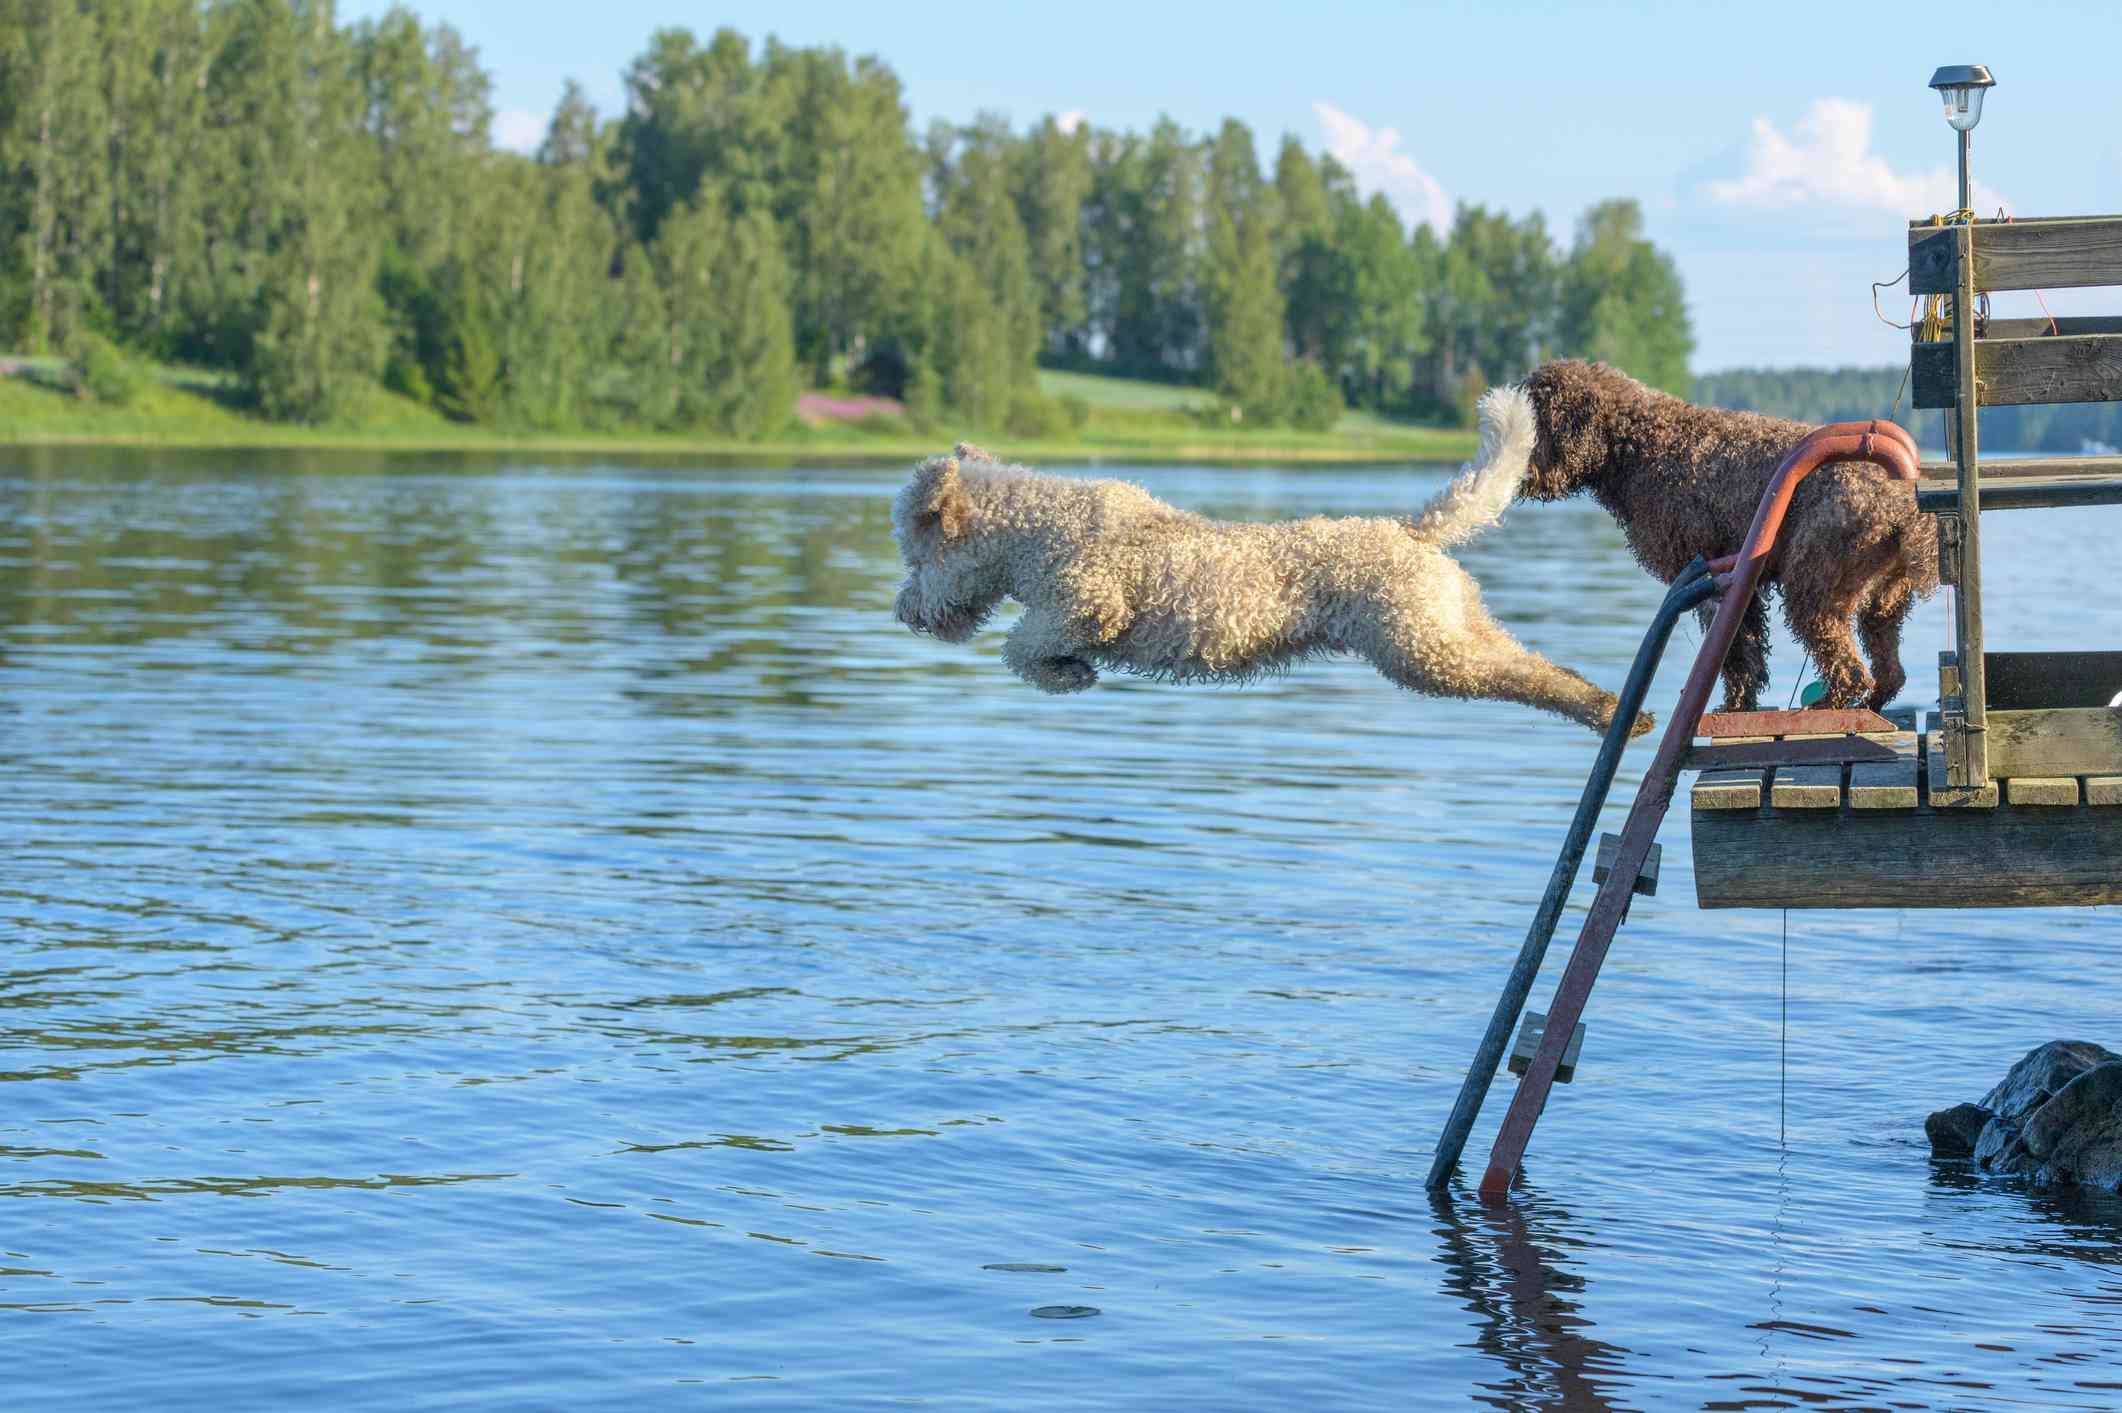 Lagotto Romagnolos diving into water